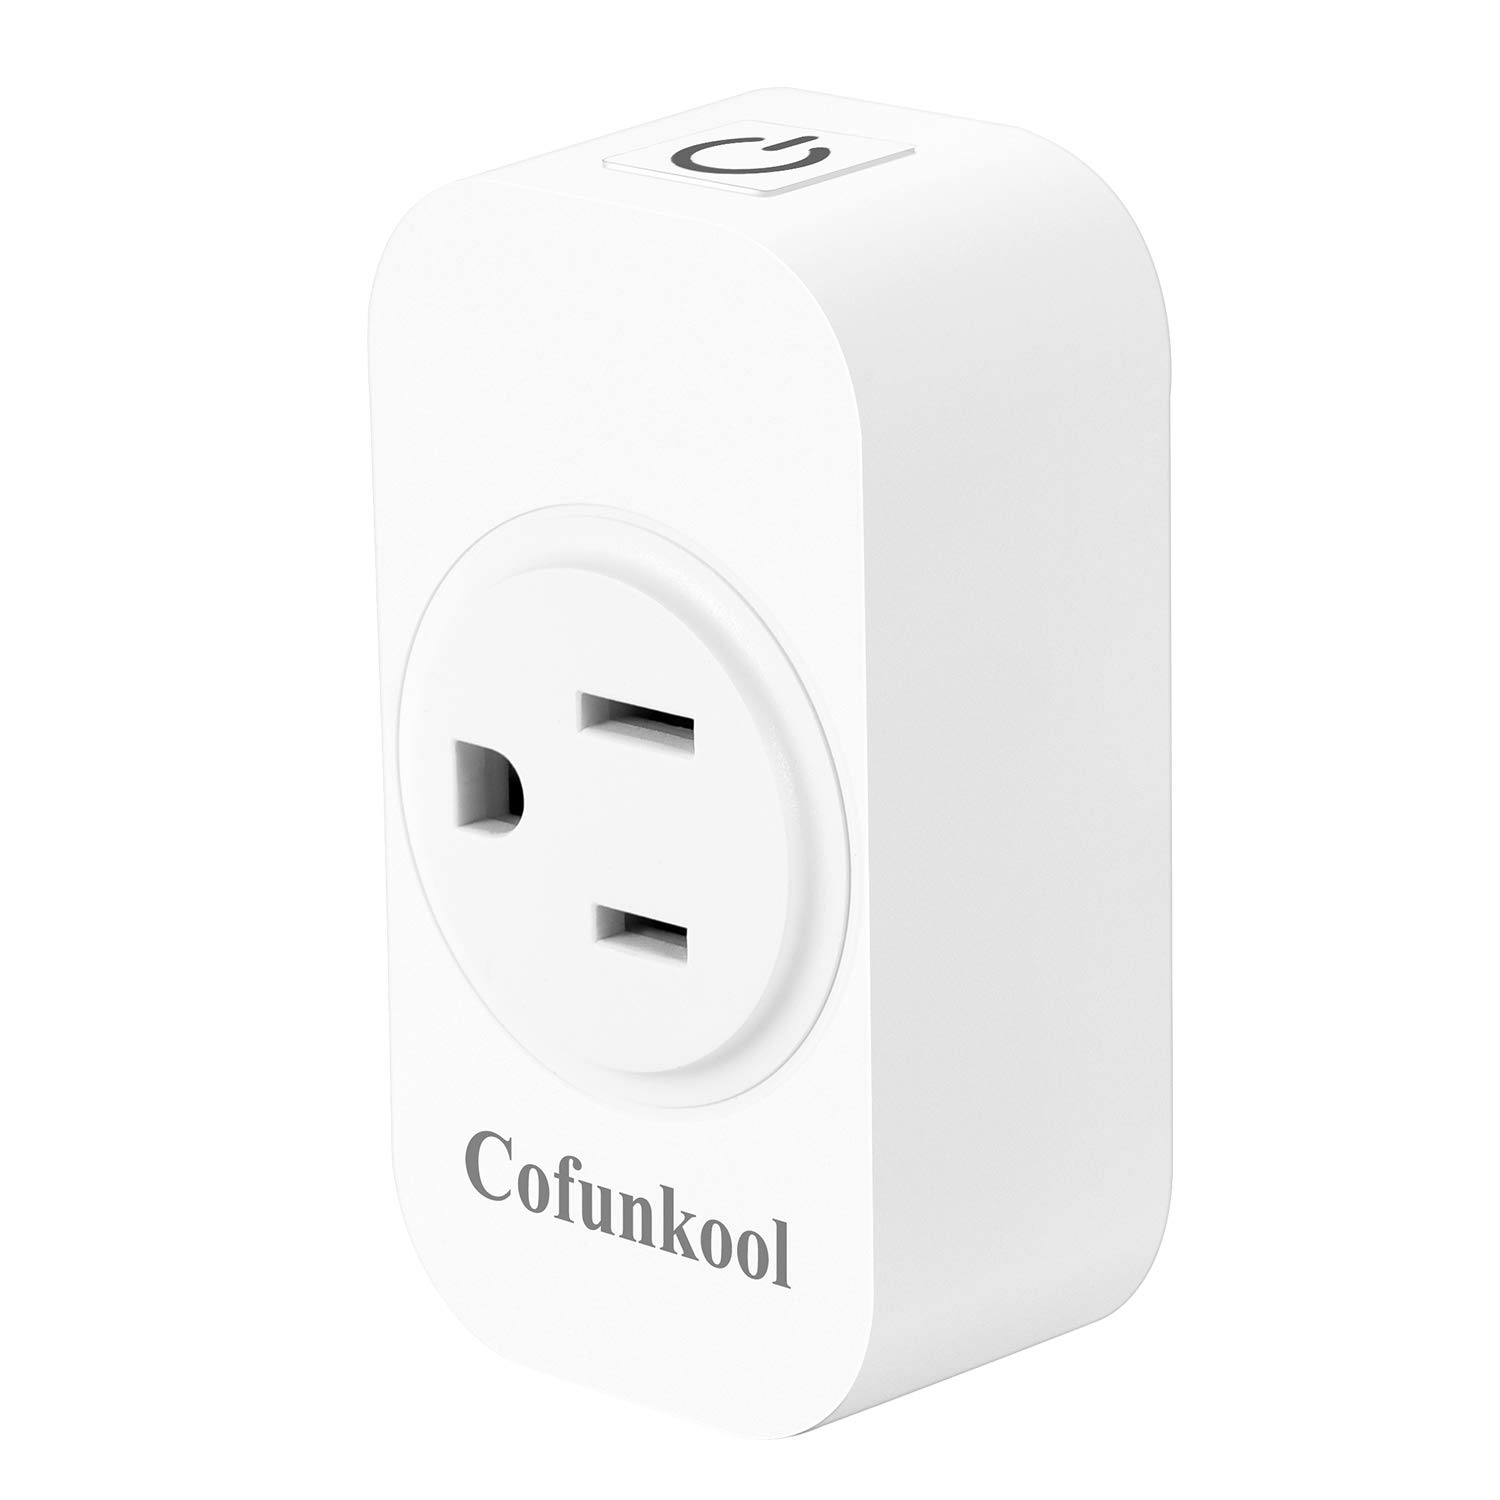 CofunKool Smart Plug WIFI Outlet Work with Alexa Echo Google Assistant Mini WIFI Plug Control Your Device form Anywhere No Hub Required